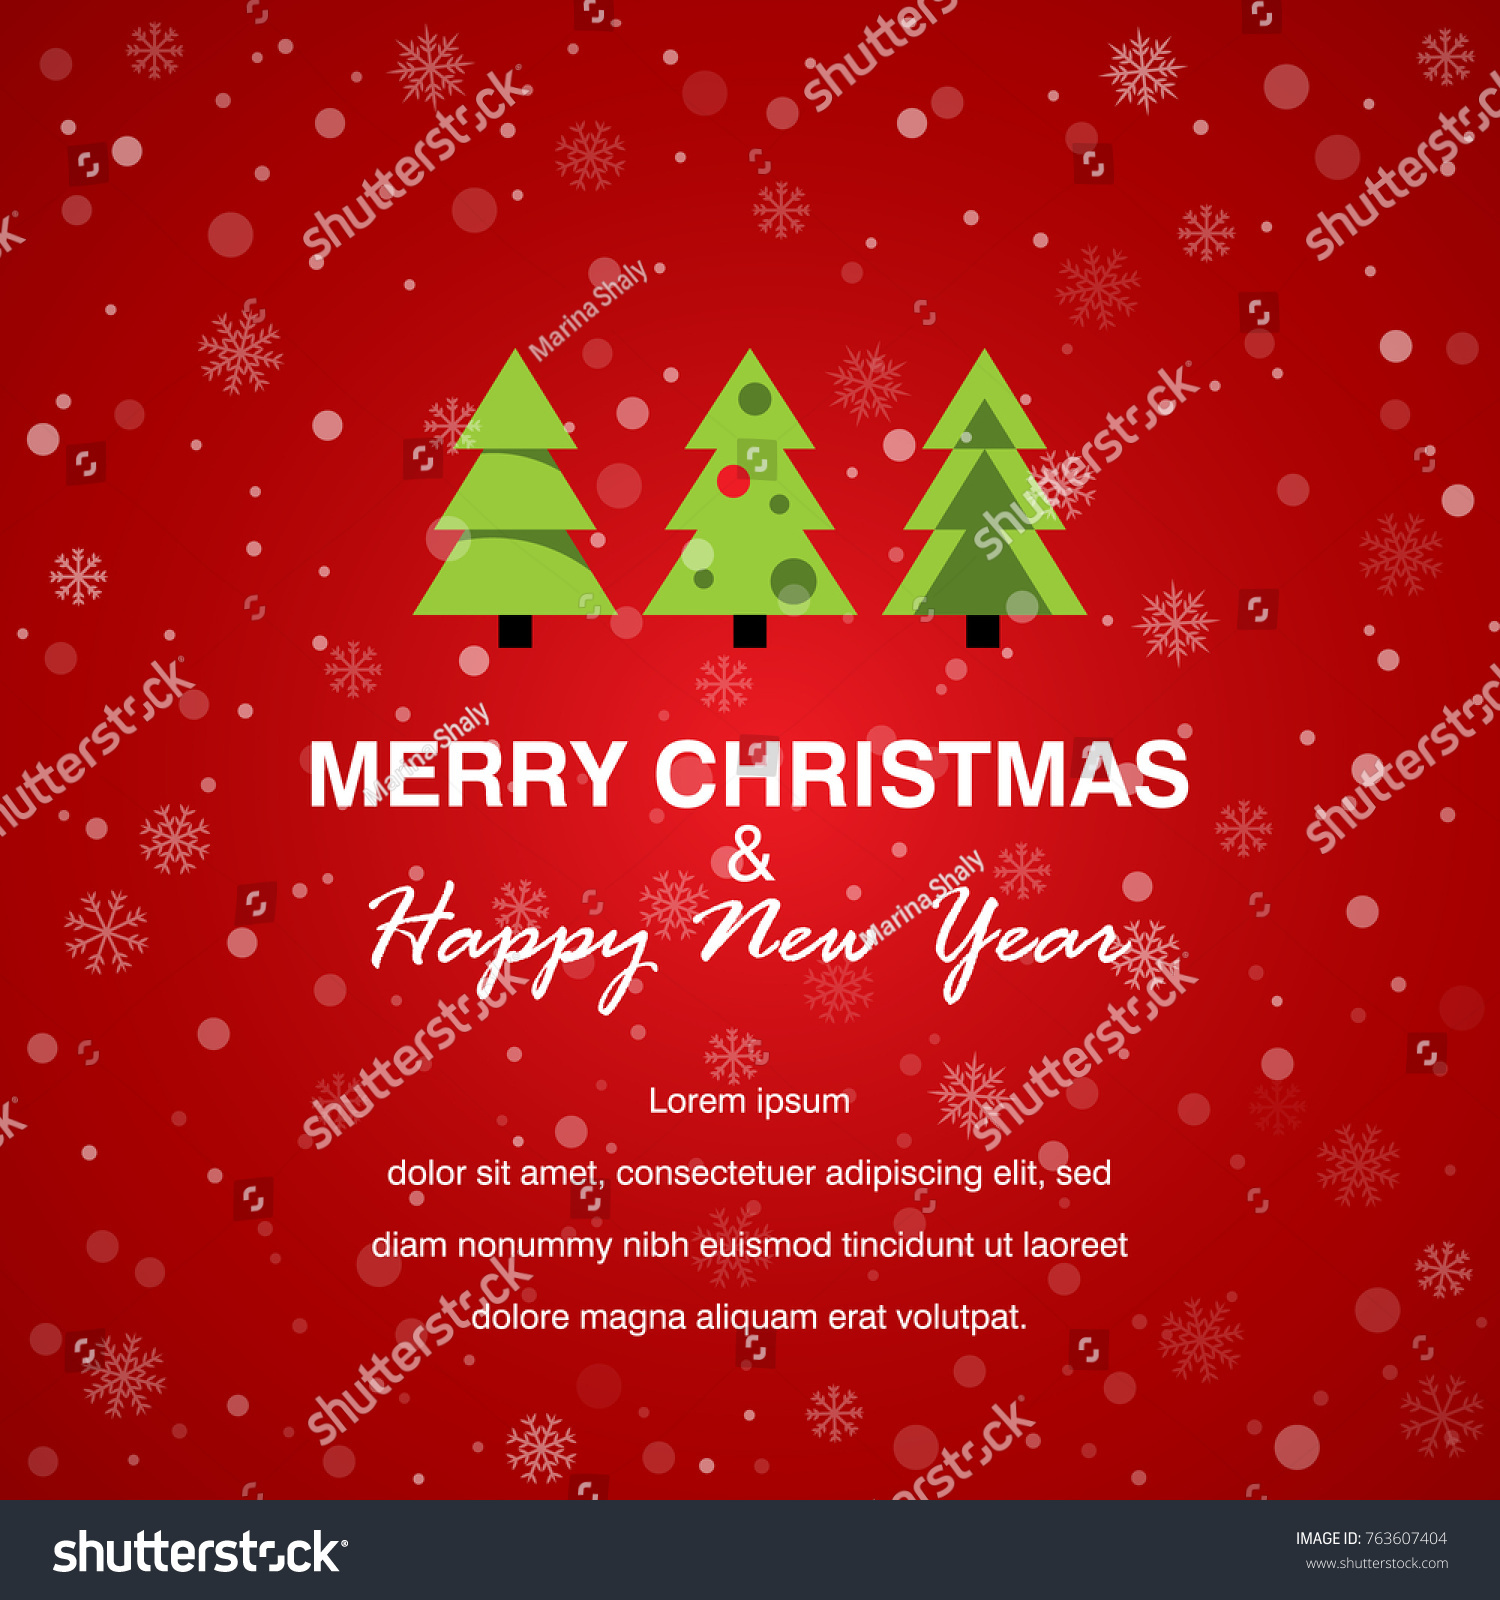 Merry christmas happy new year card stock vector royalty free merry christmas and happy new year card vector illustration flat simple style holiday m4hsunfo